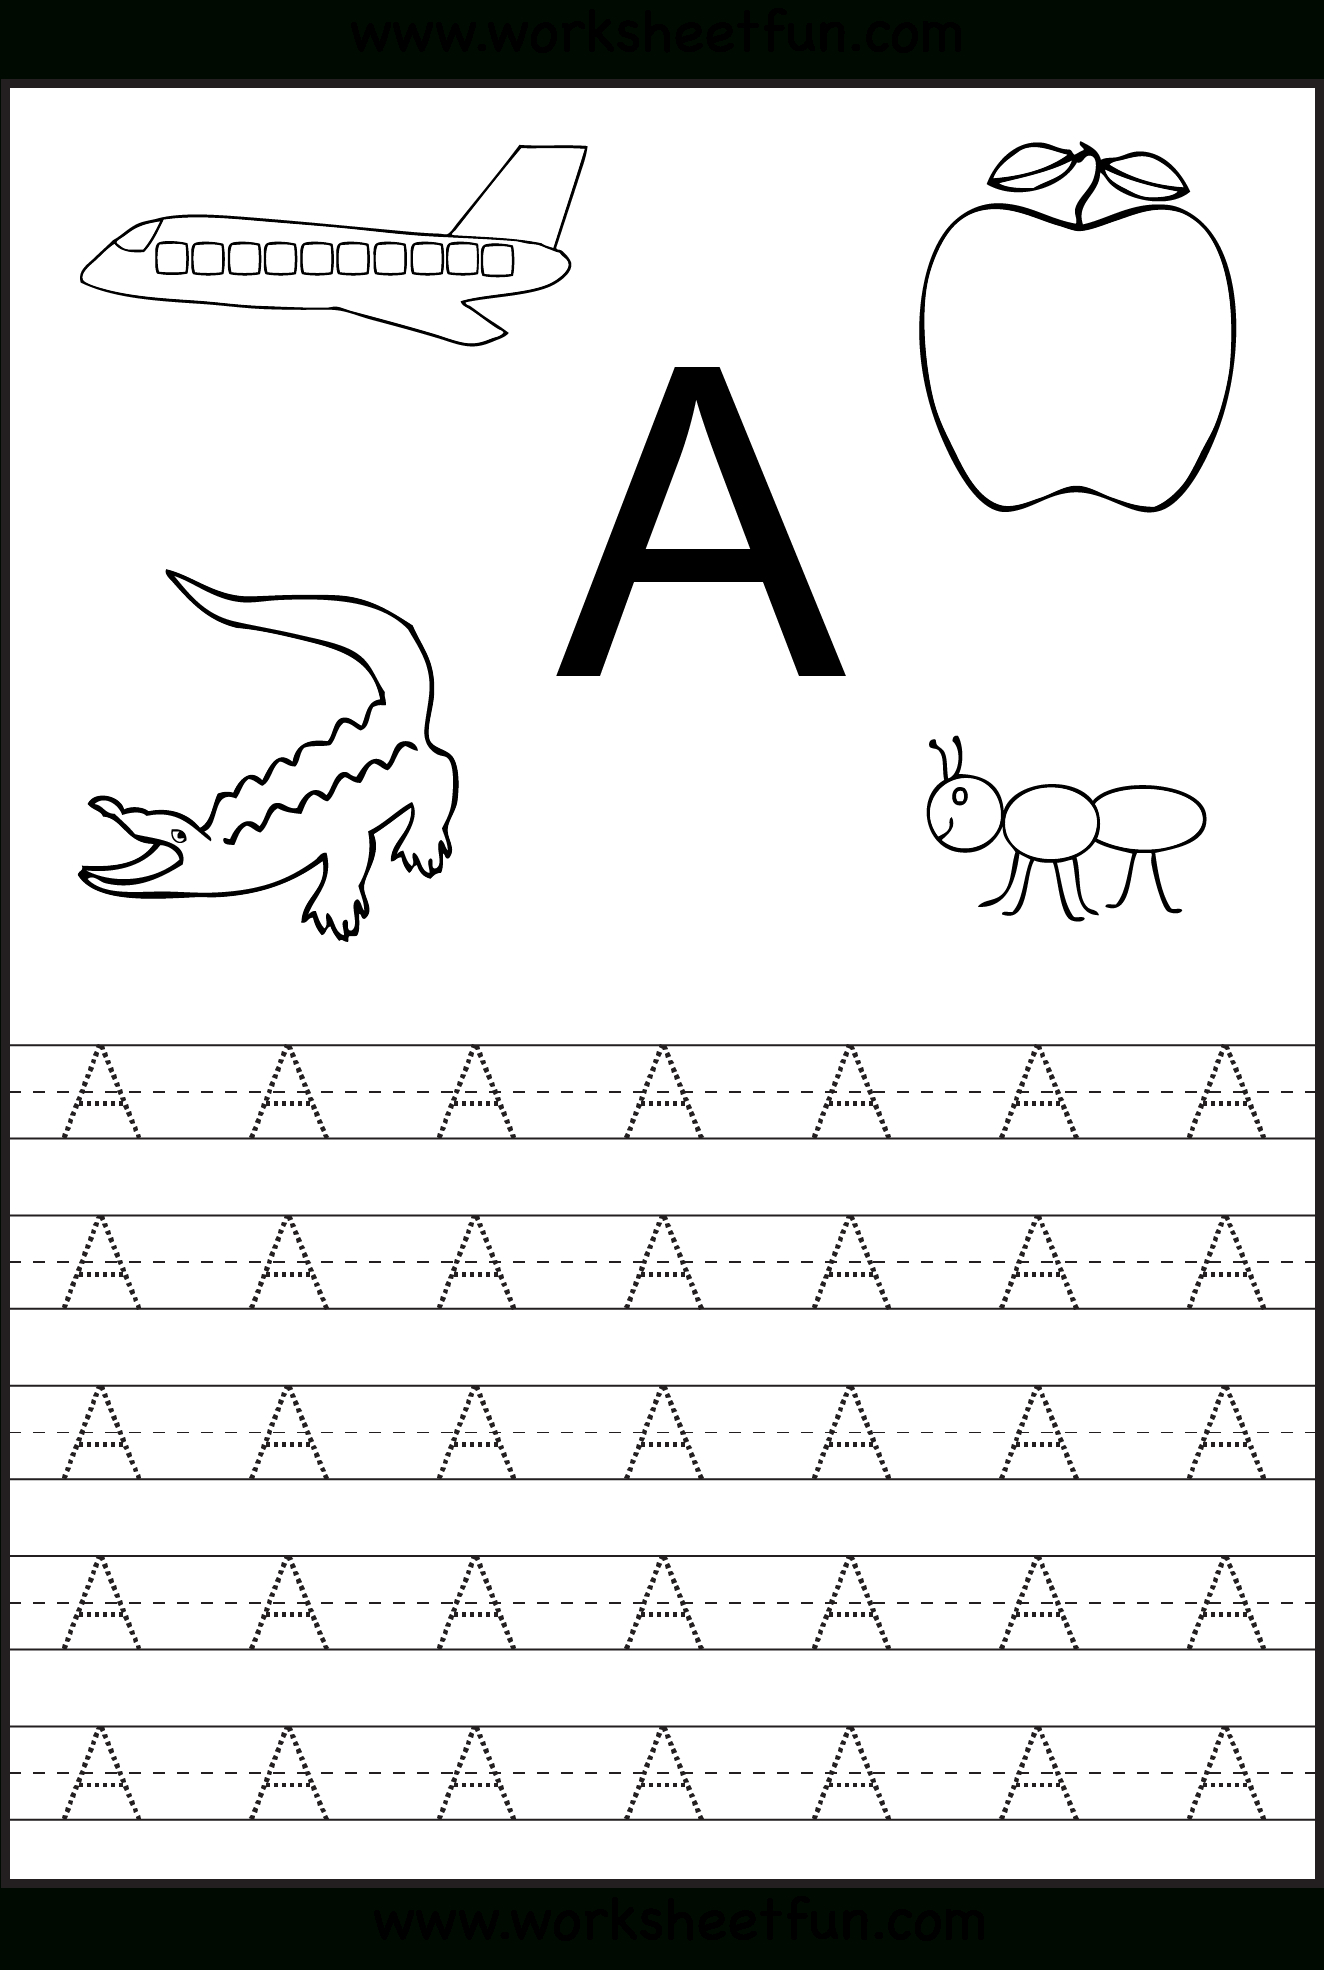 Free Printable Worksheets: Letter Tracing Worksheets For intended for Preschool Dotted Letters For Tracing